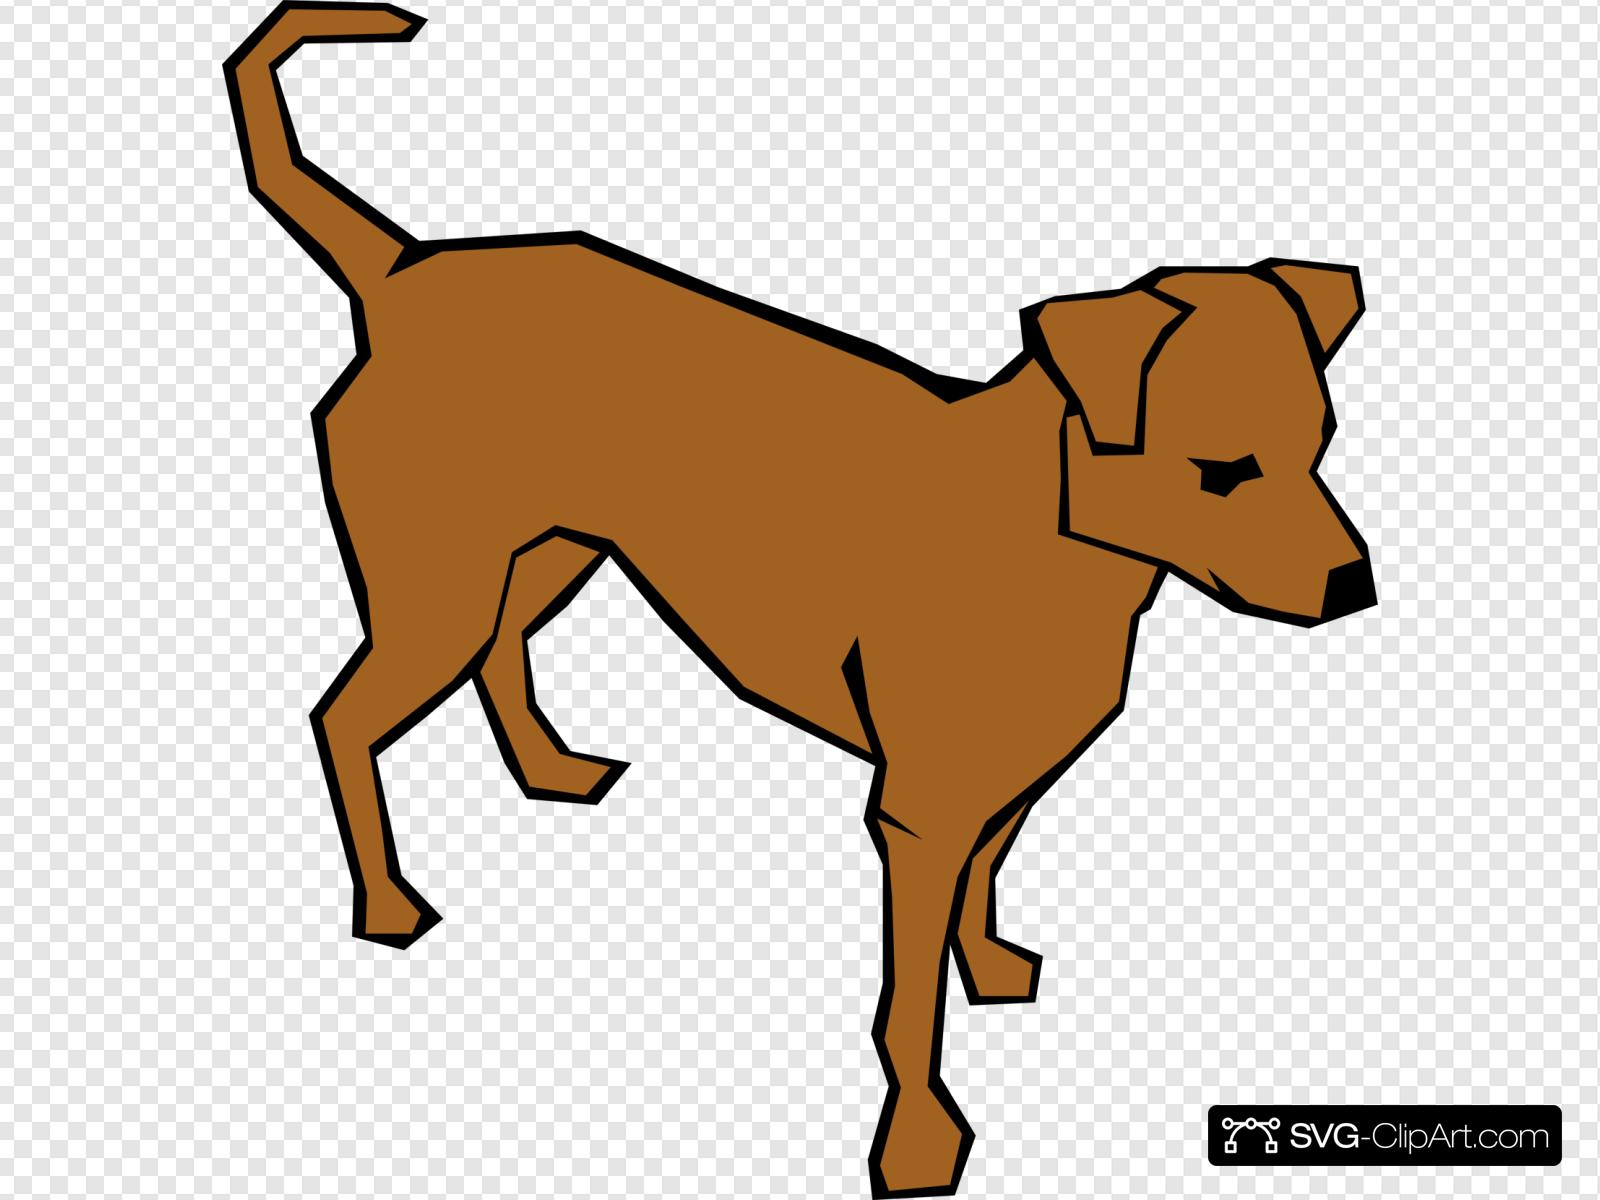 Alert Dog In Color Clip art, Icon and SVG.